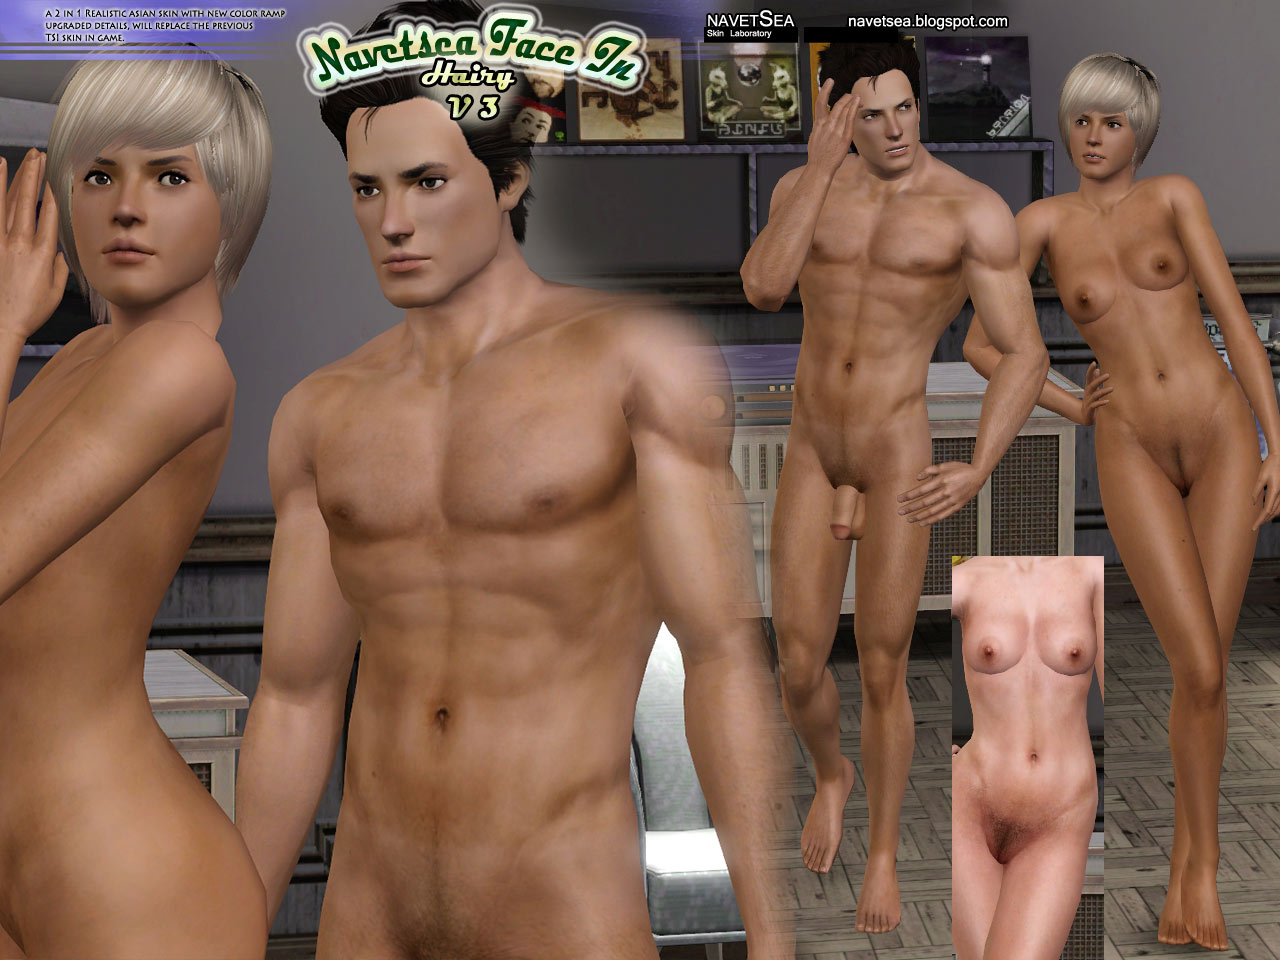 The sims 3 nude female skins porno gallery